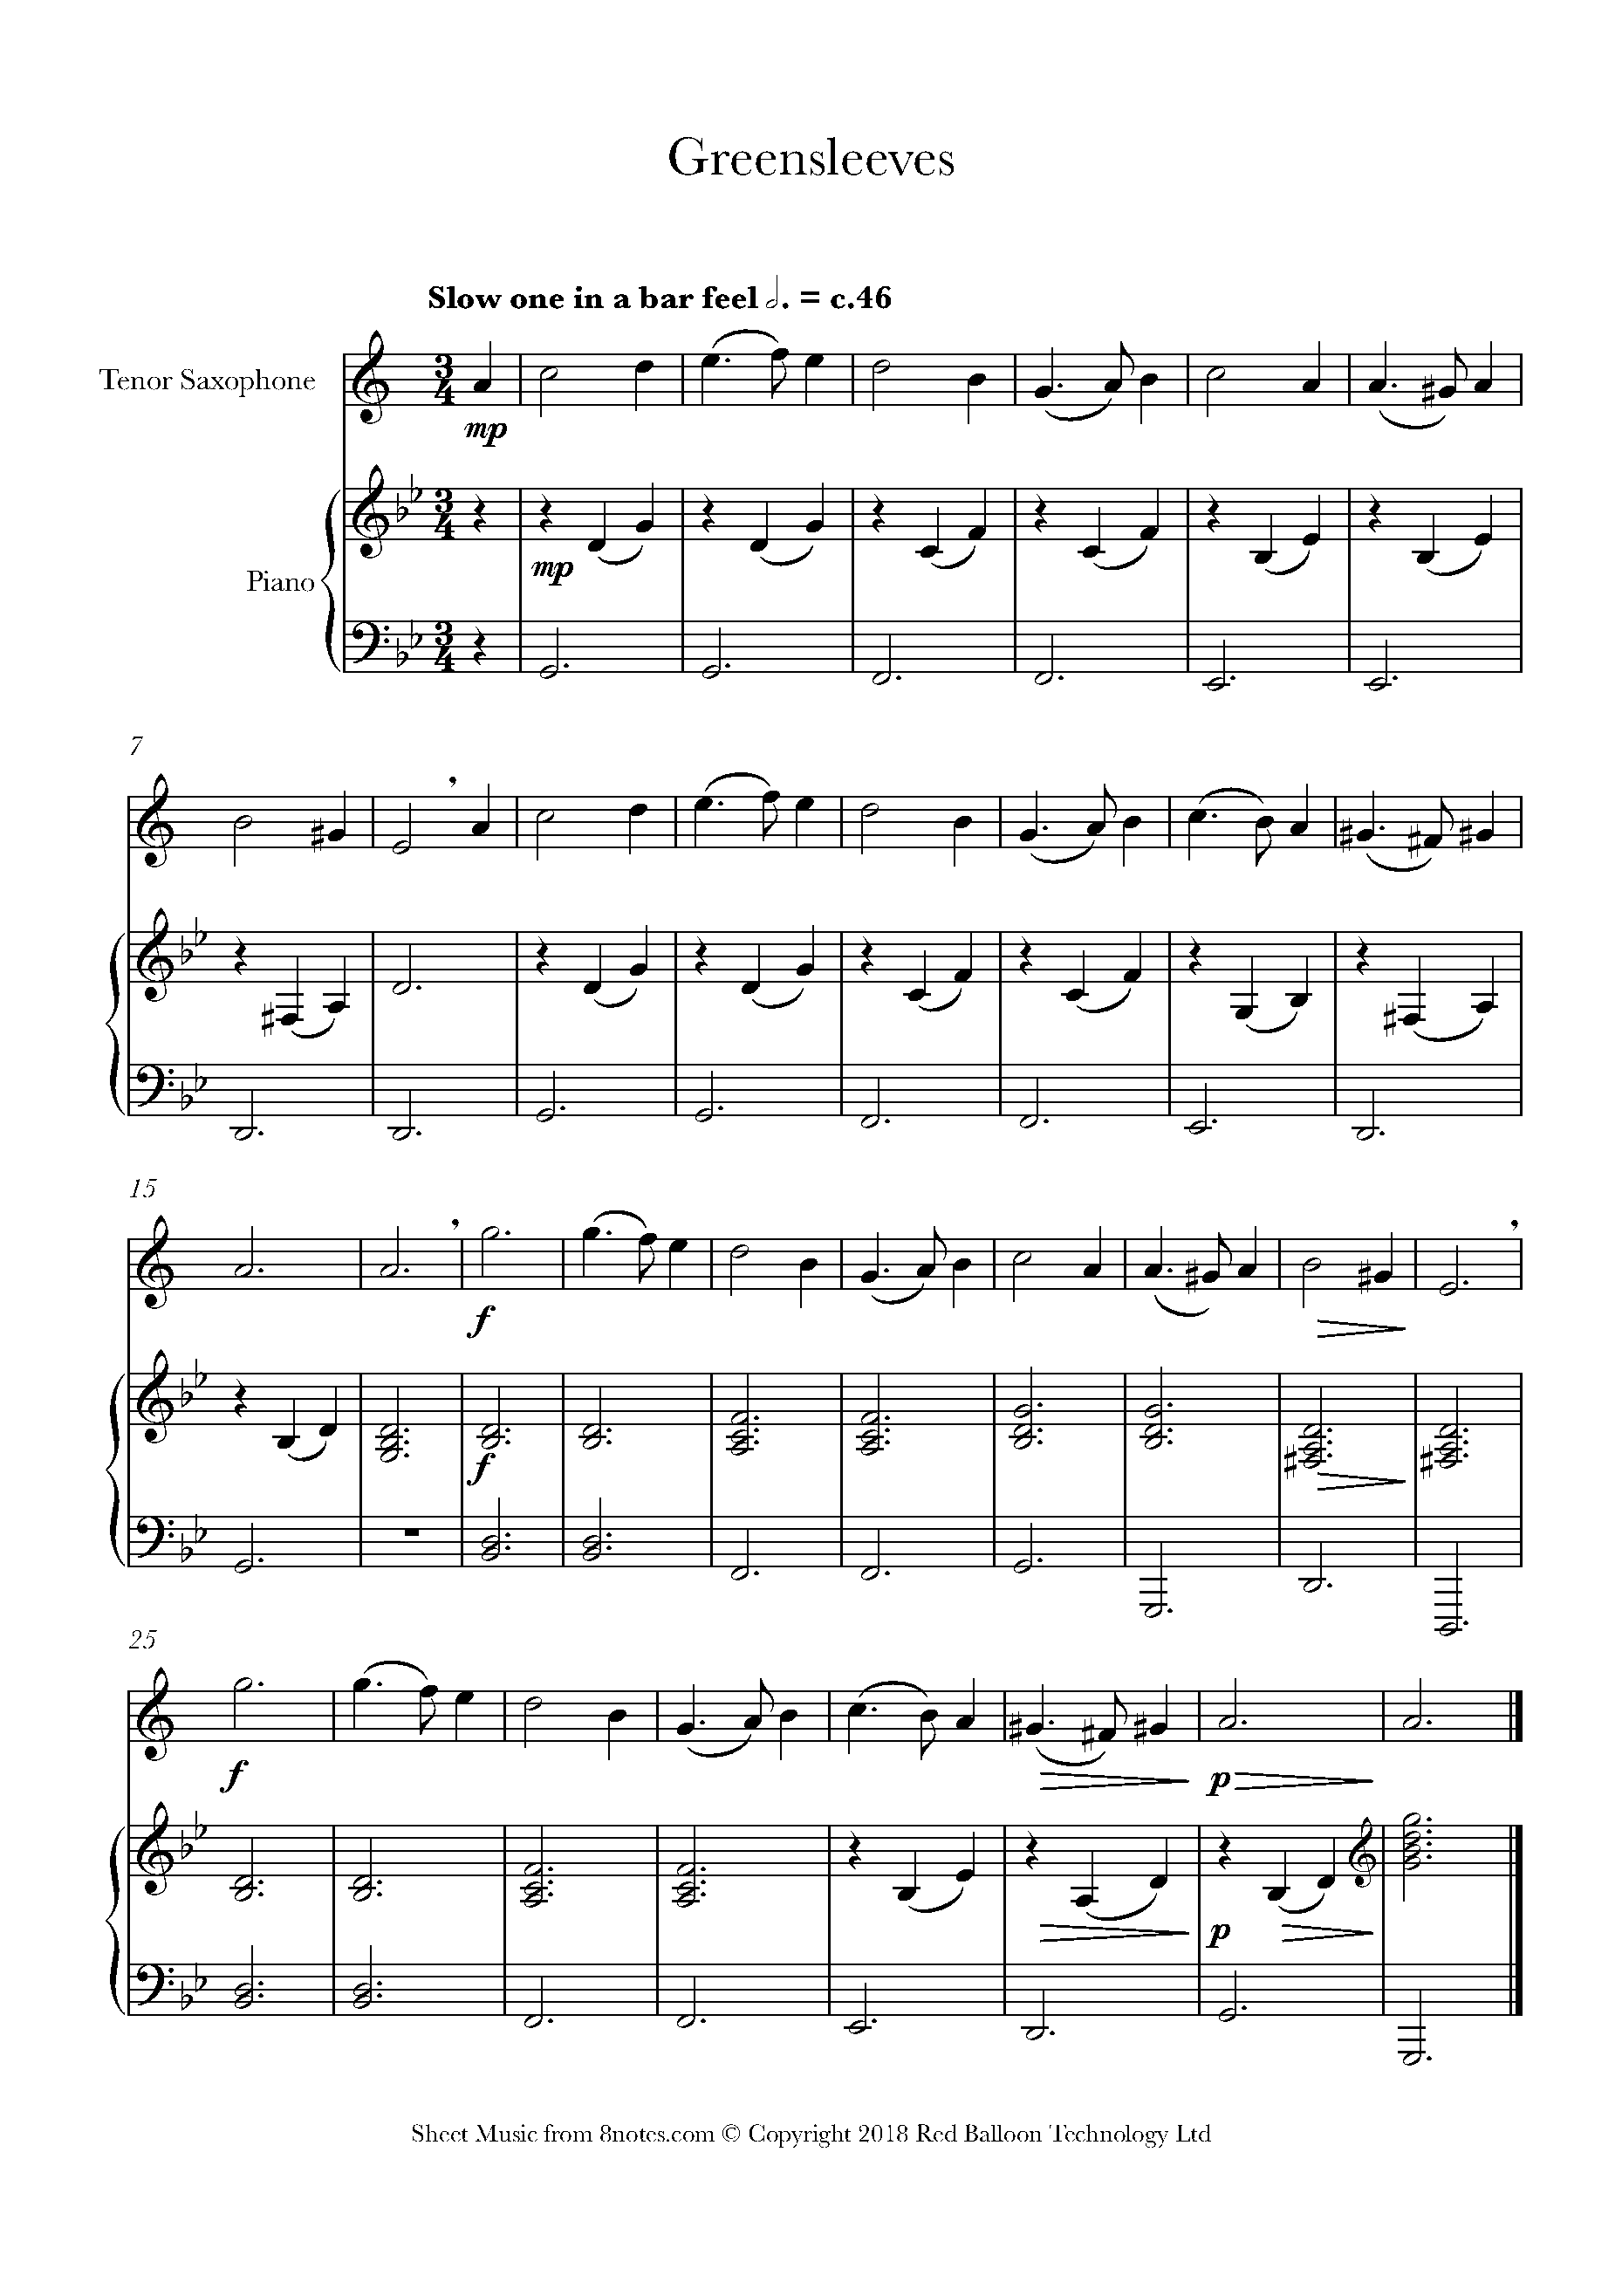 greensleeves sheet music for tenor saxophone - 8notes.com  8notes